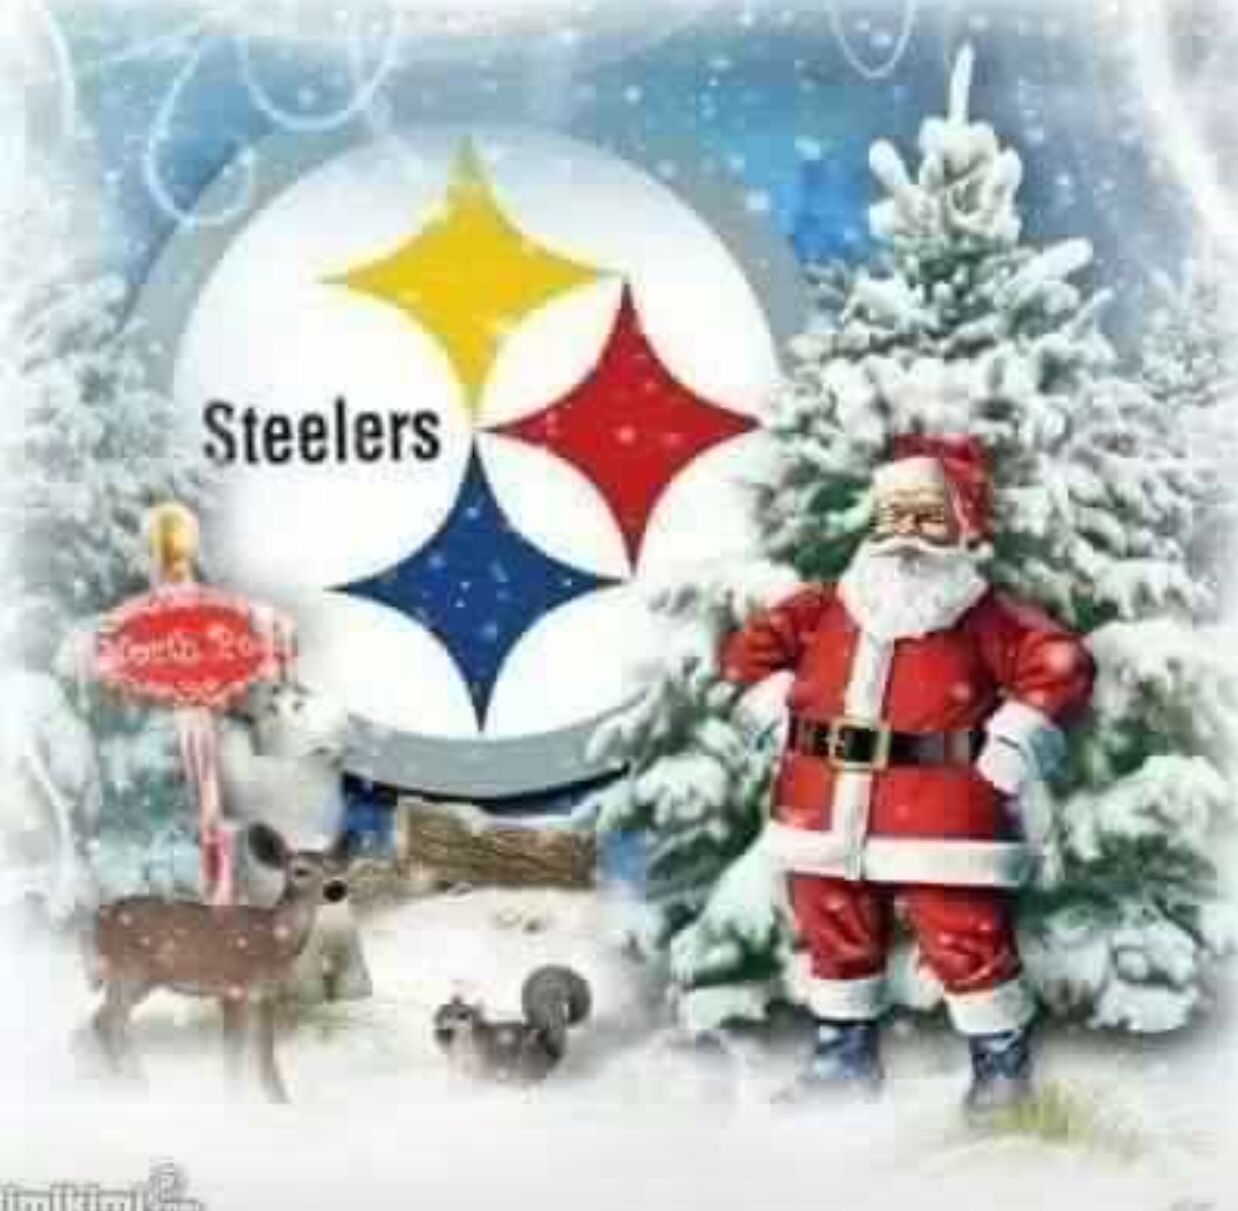 Pin by Bonnie Mehal on STEELERS (With images) | Christmas ...